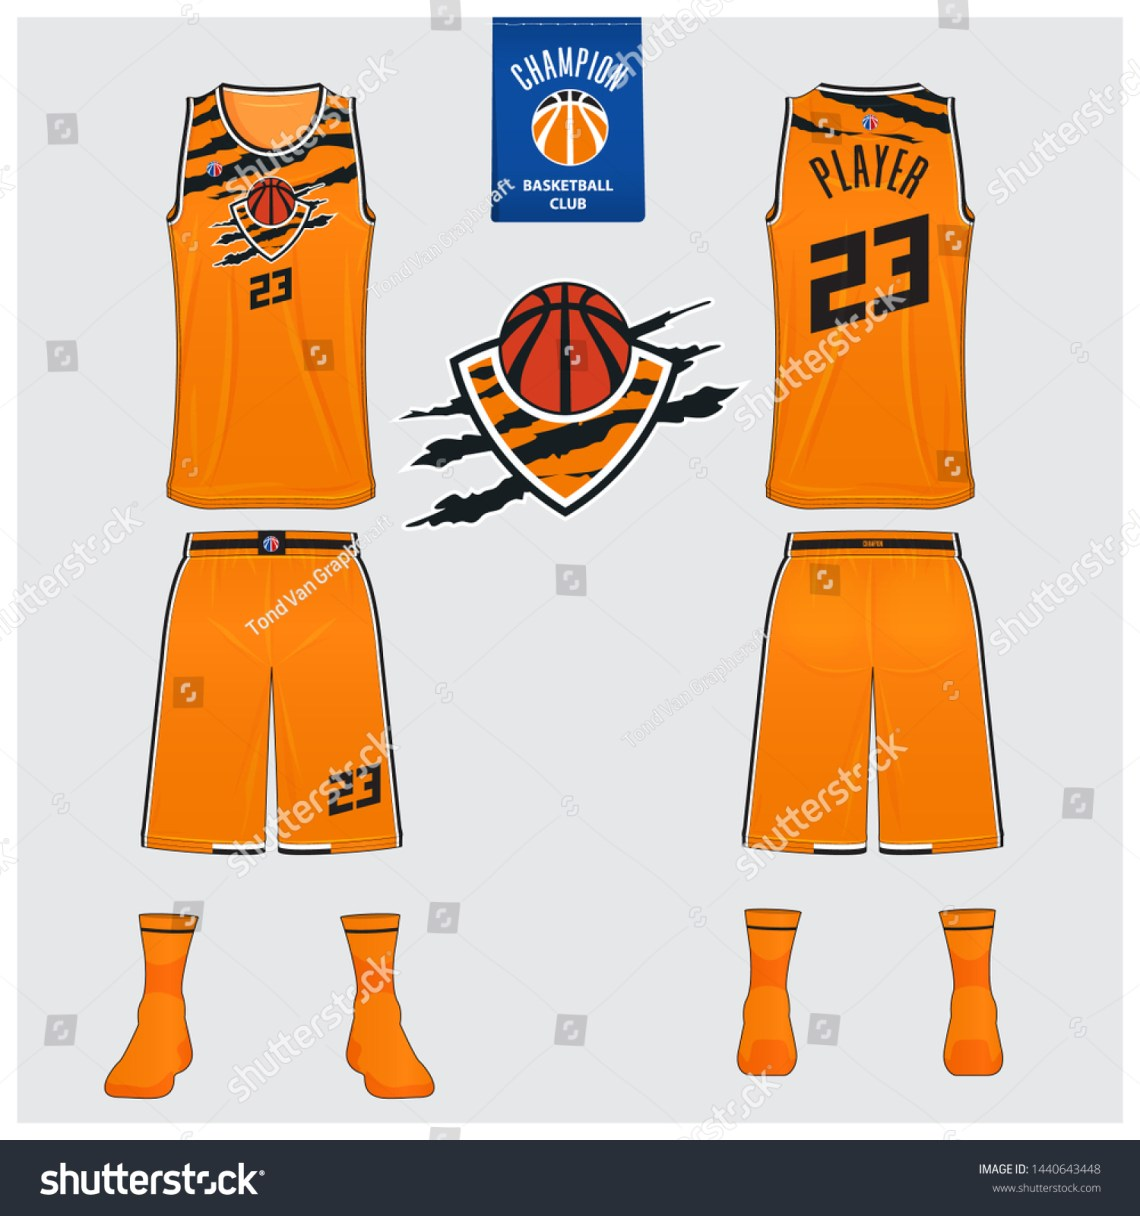 Download 12+ Basketball Jersey Mockup Side View PNG Yellowimages ...